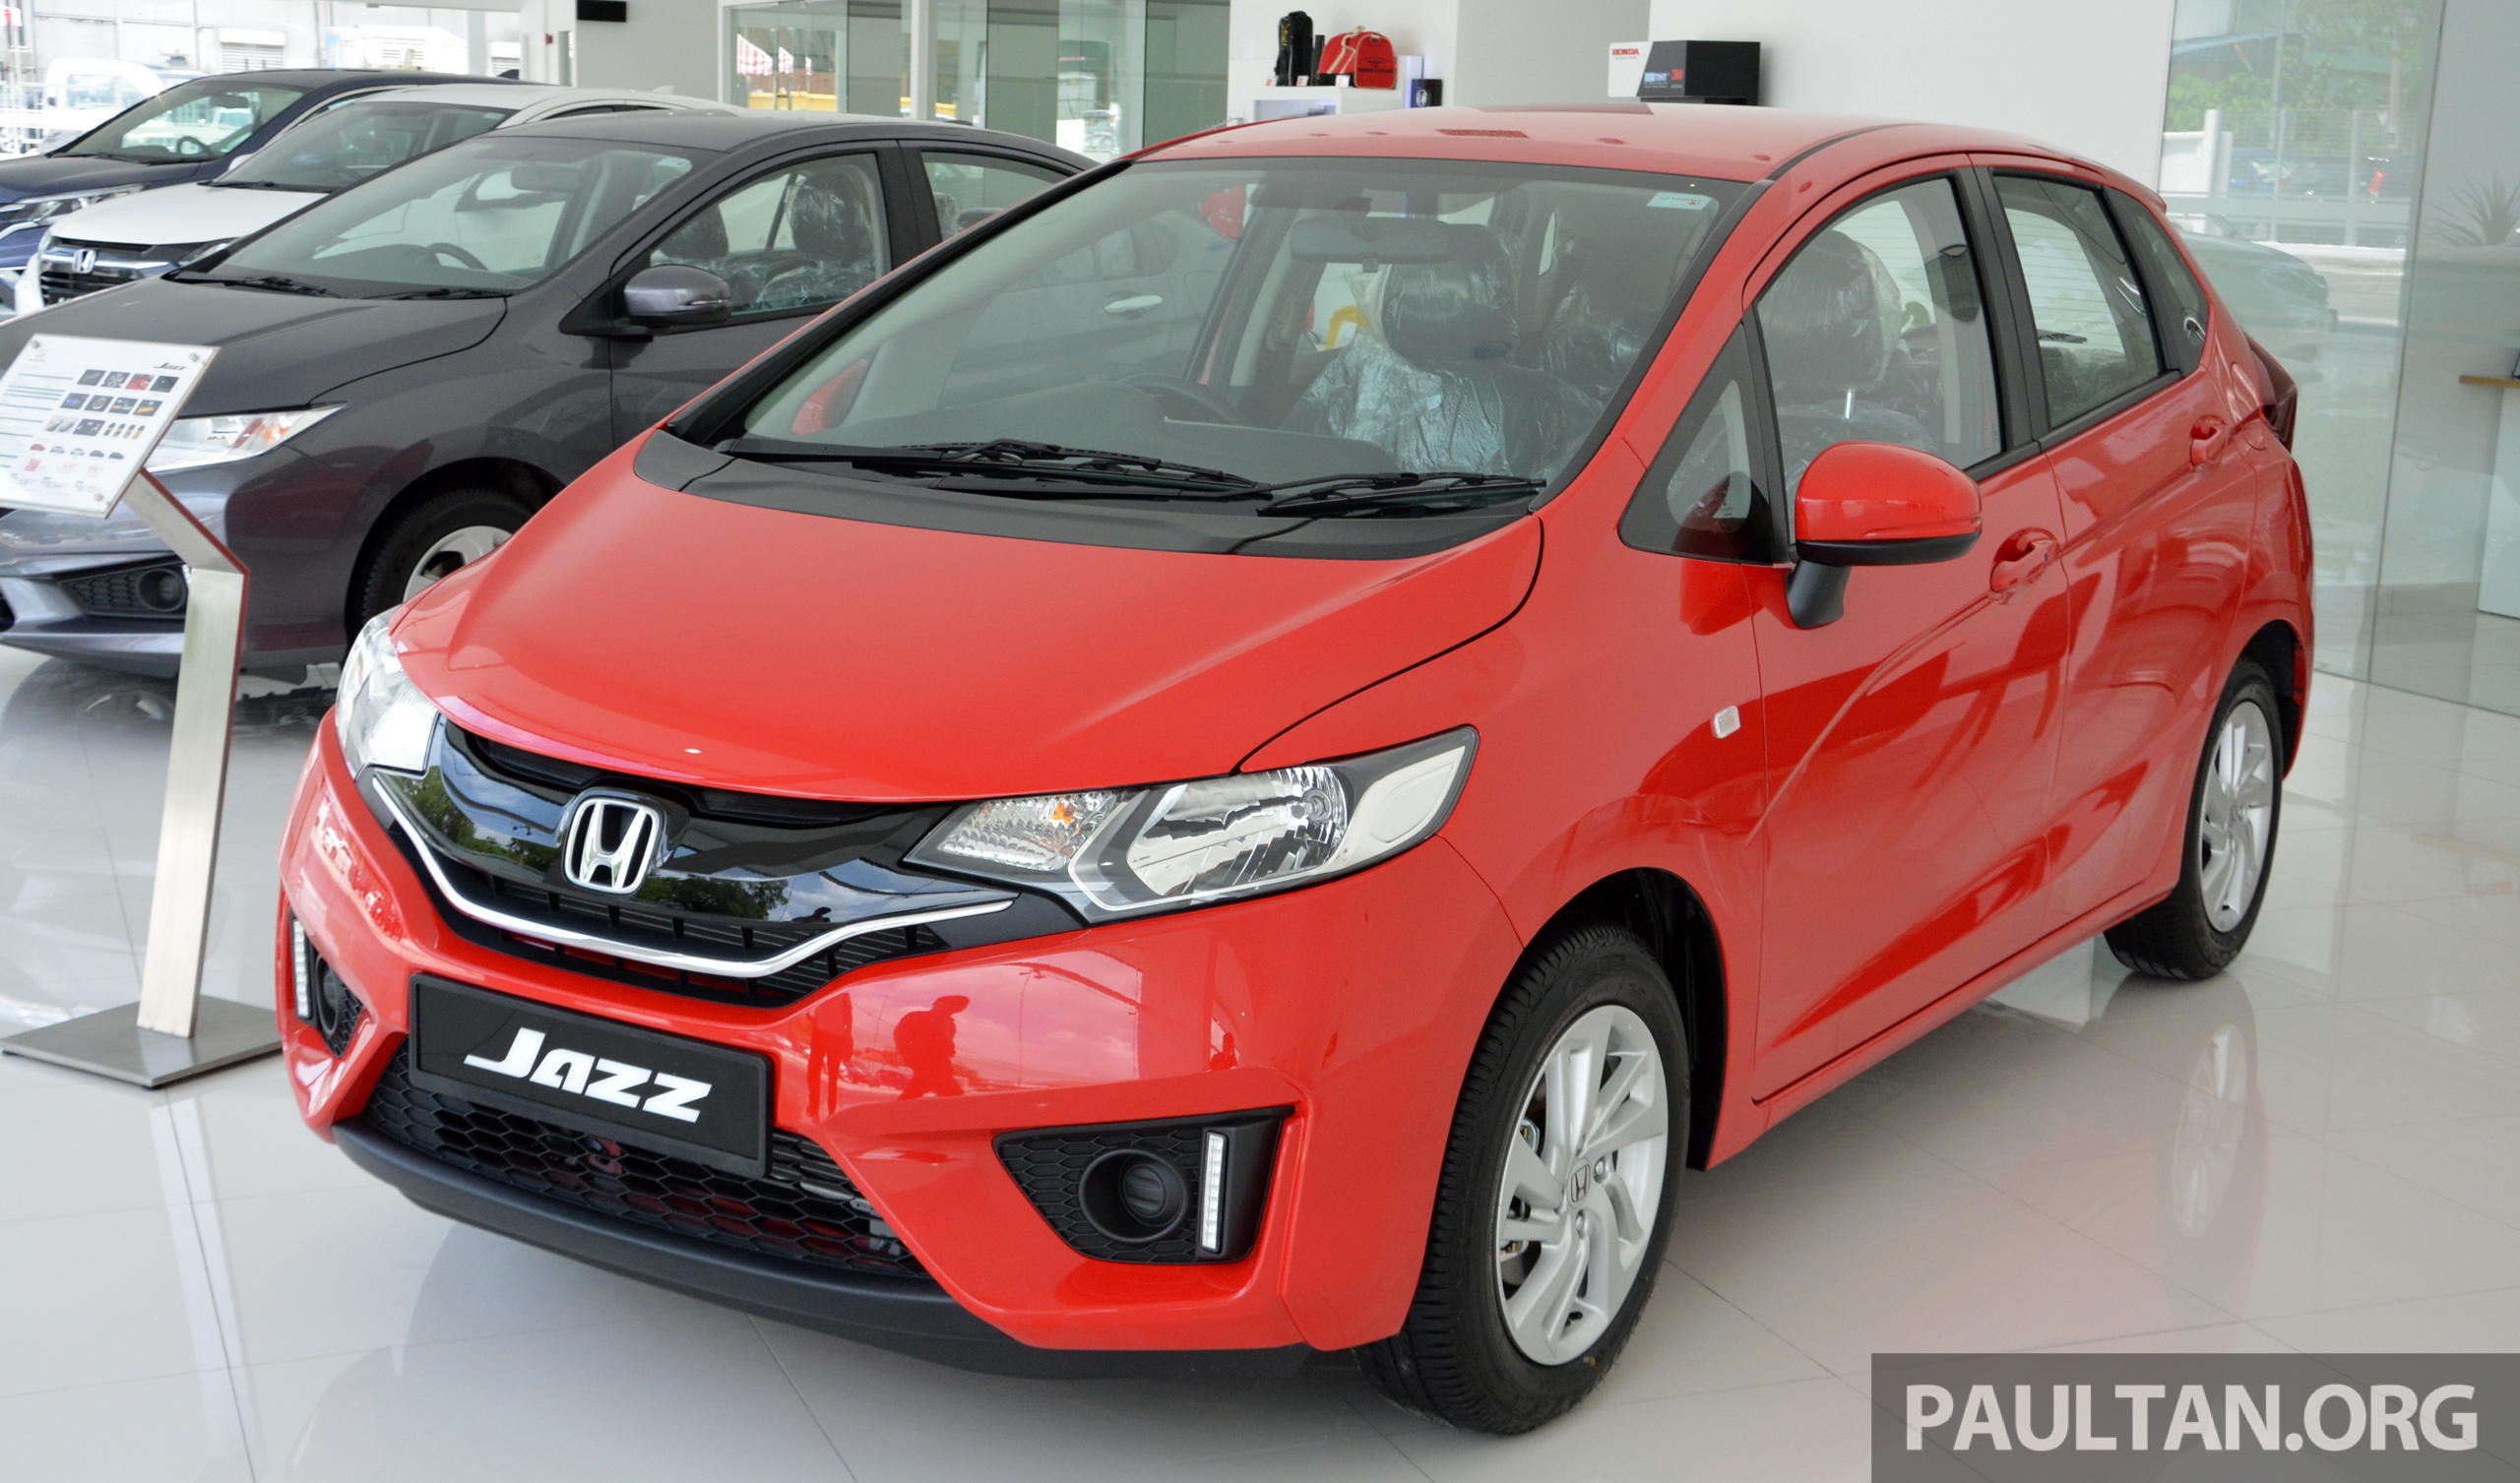 GALLERY Honda Jazz X Limited Run Of 300 Examples Image 544009